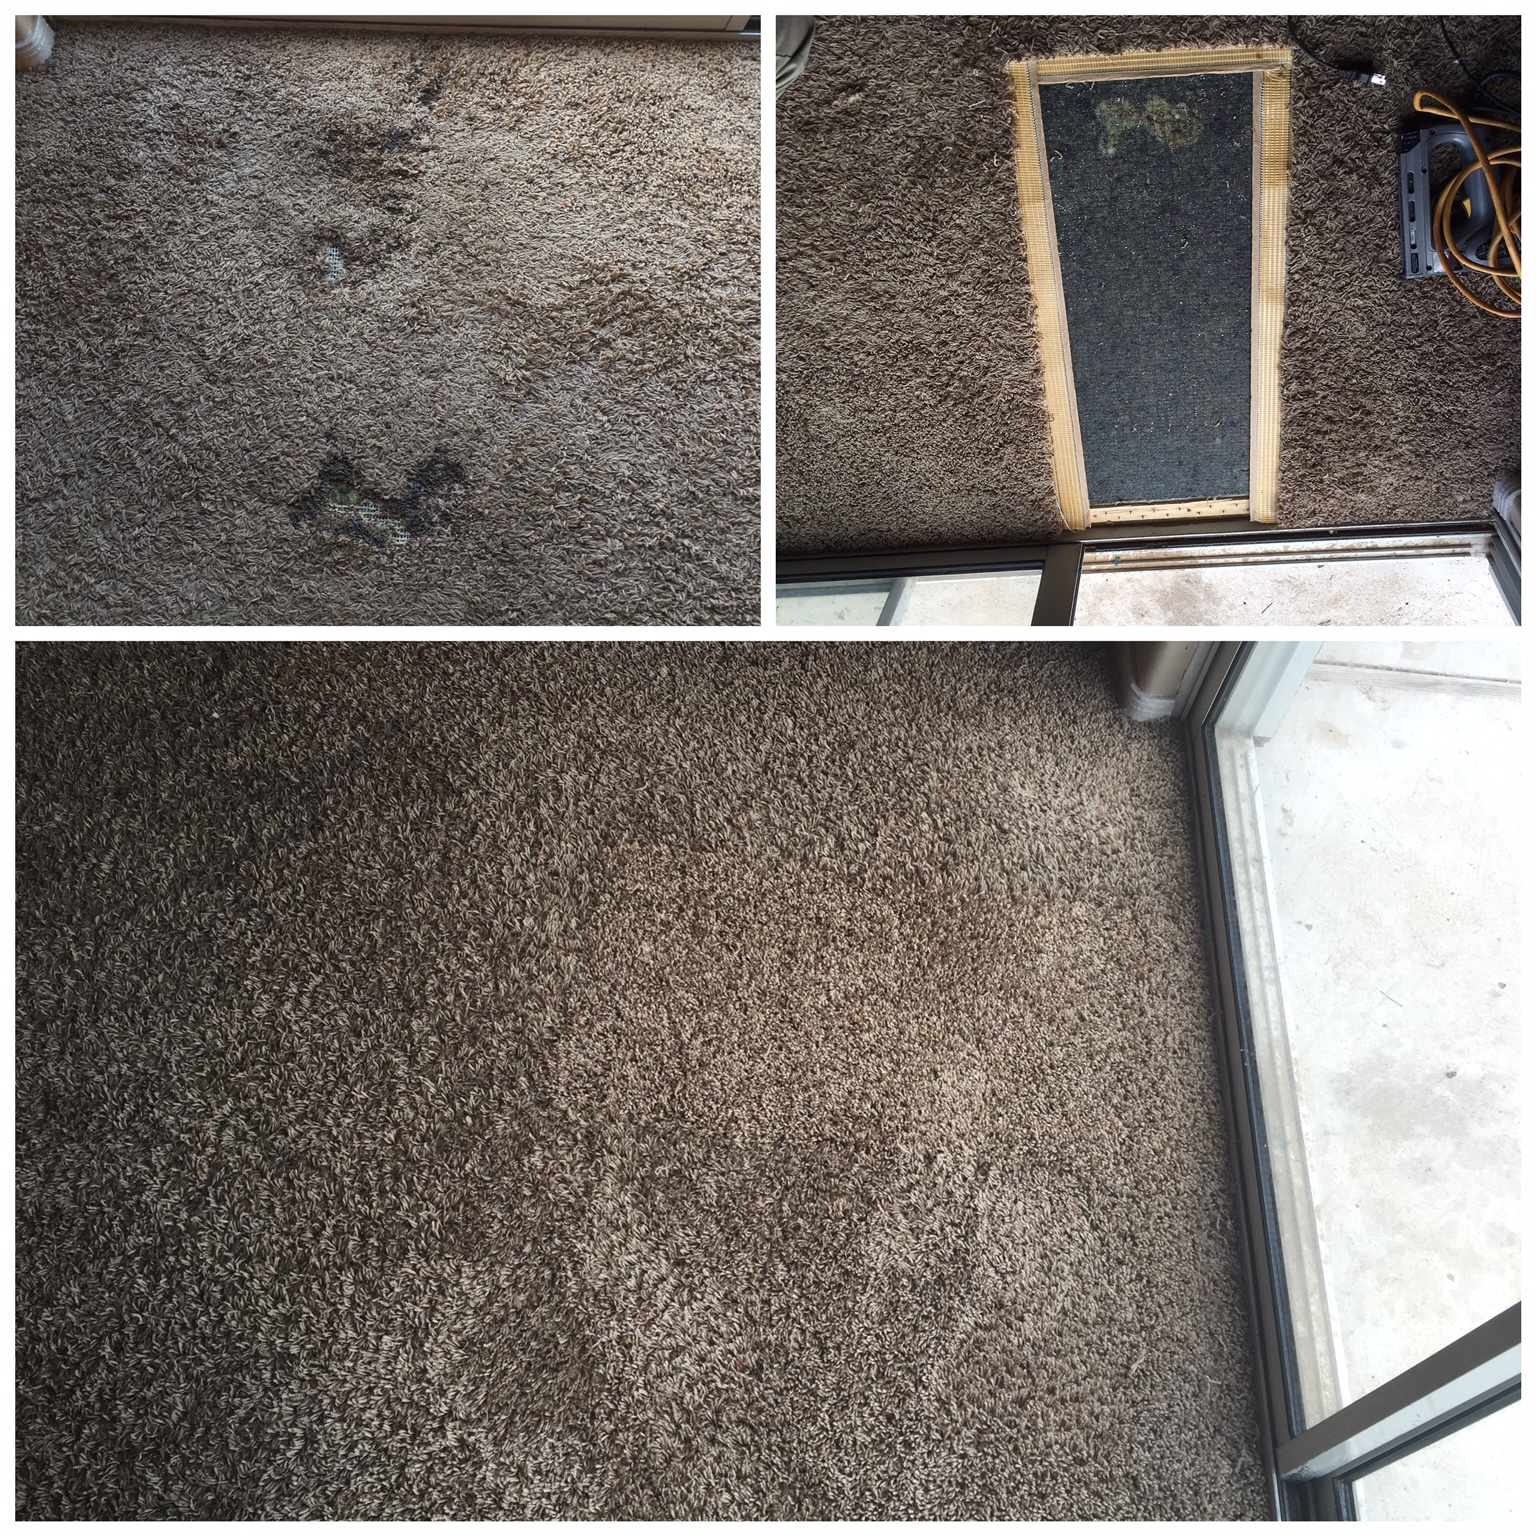 carpet repair services in glendale az